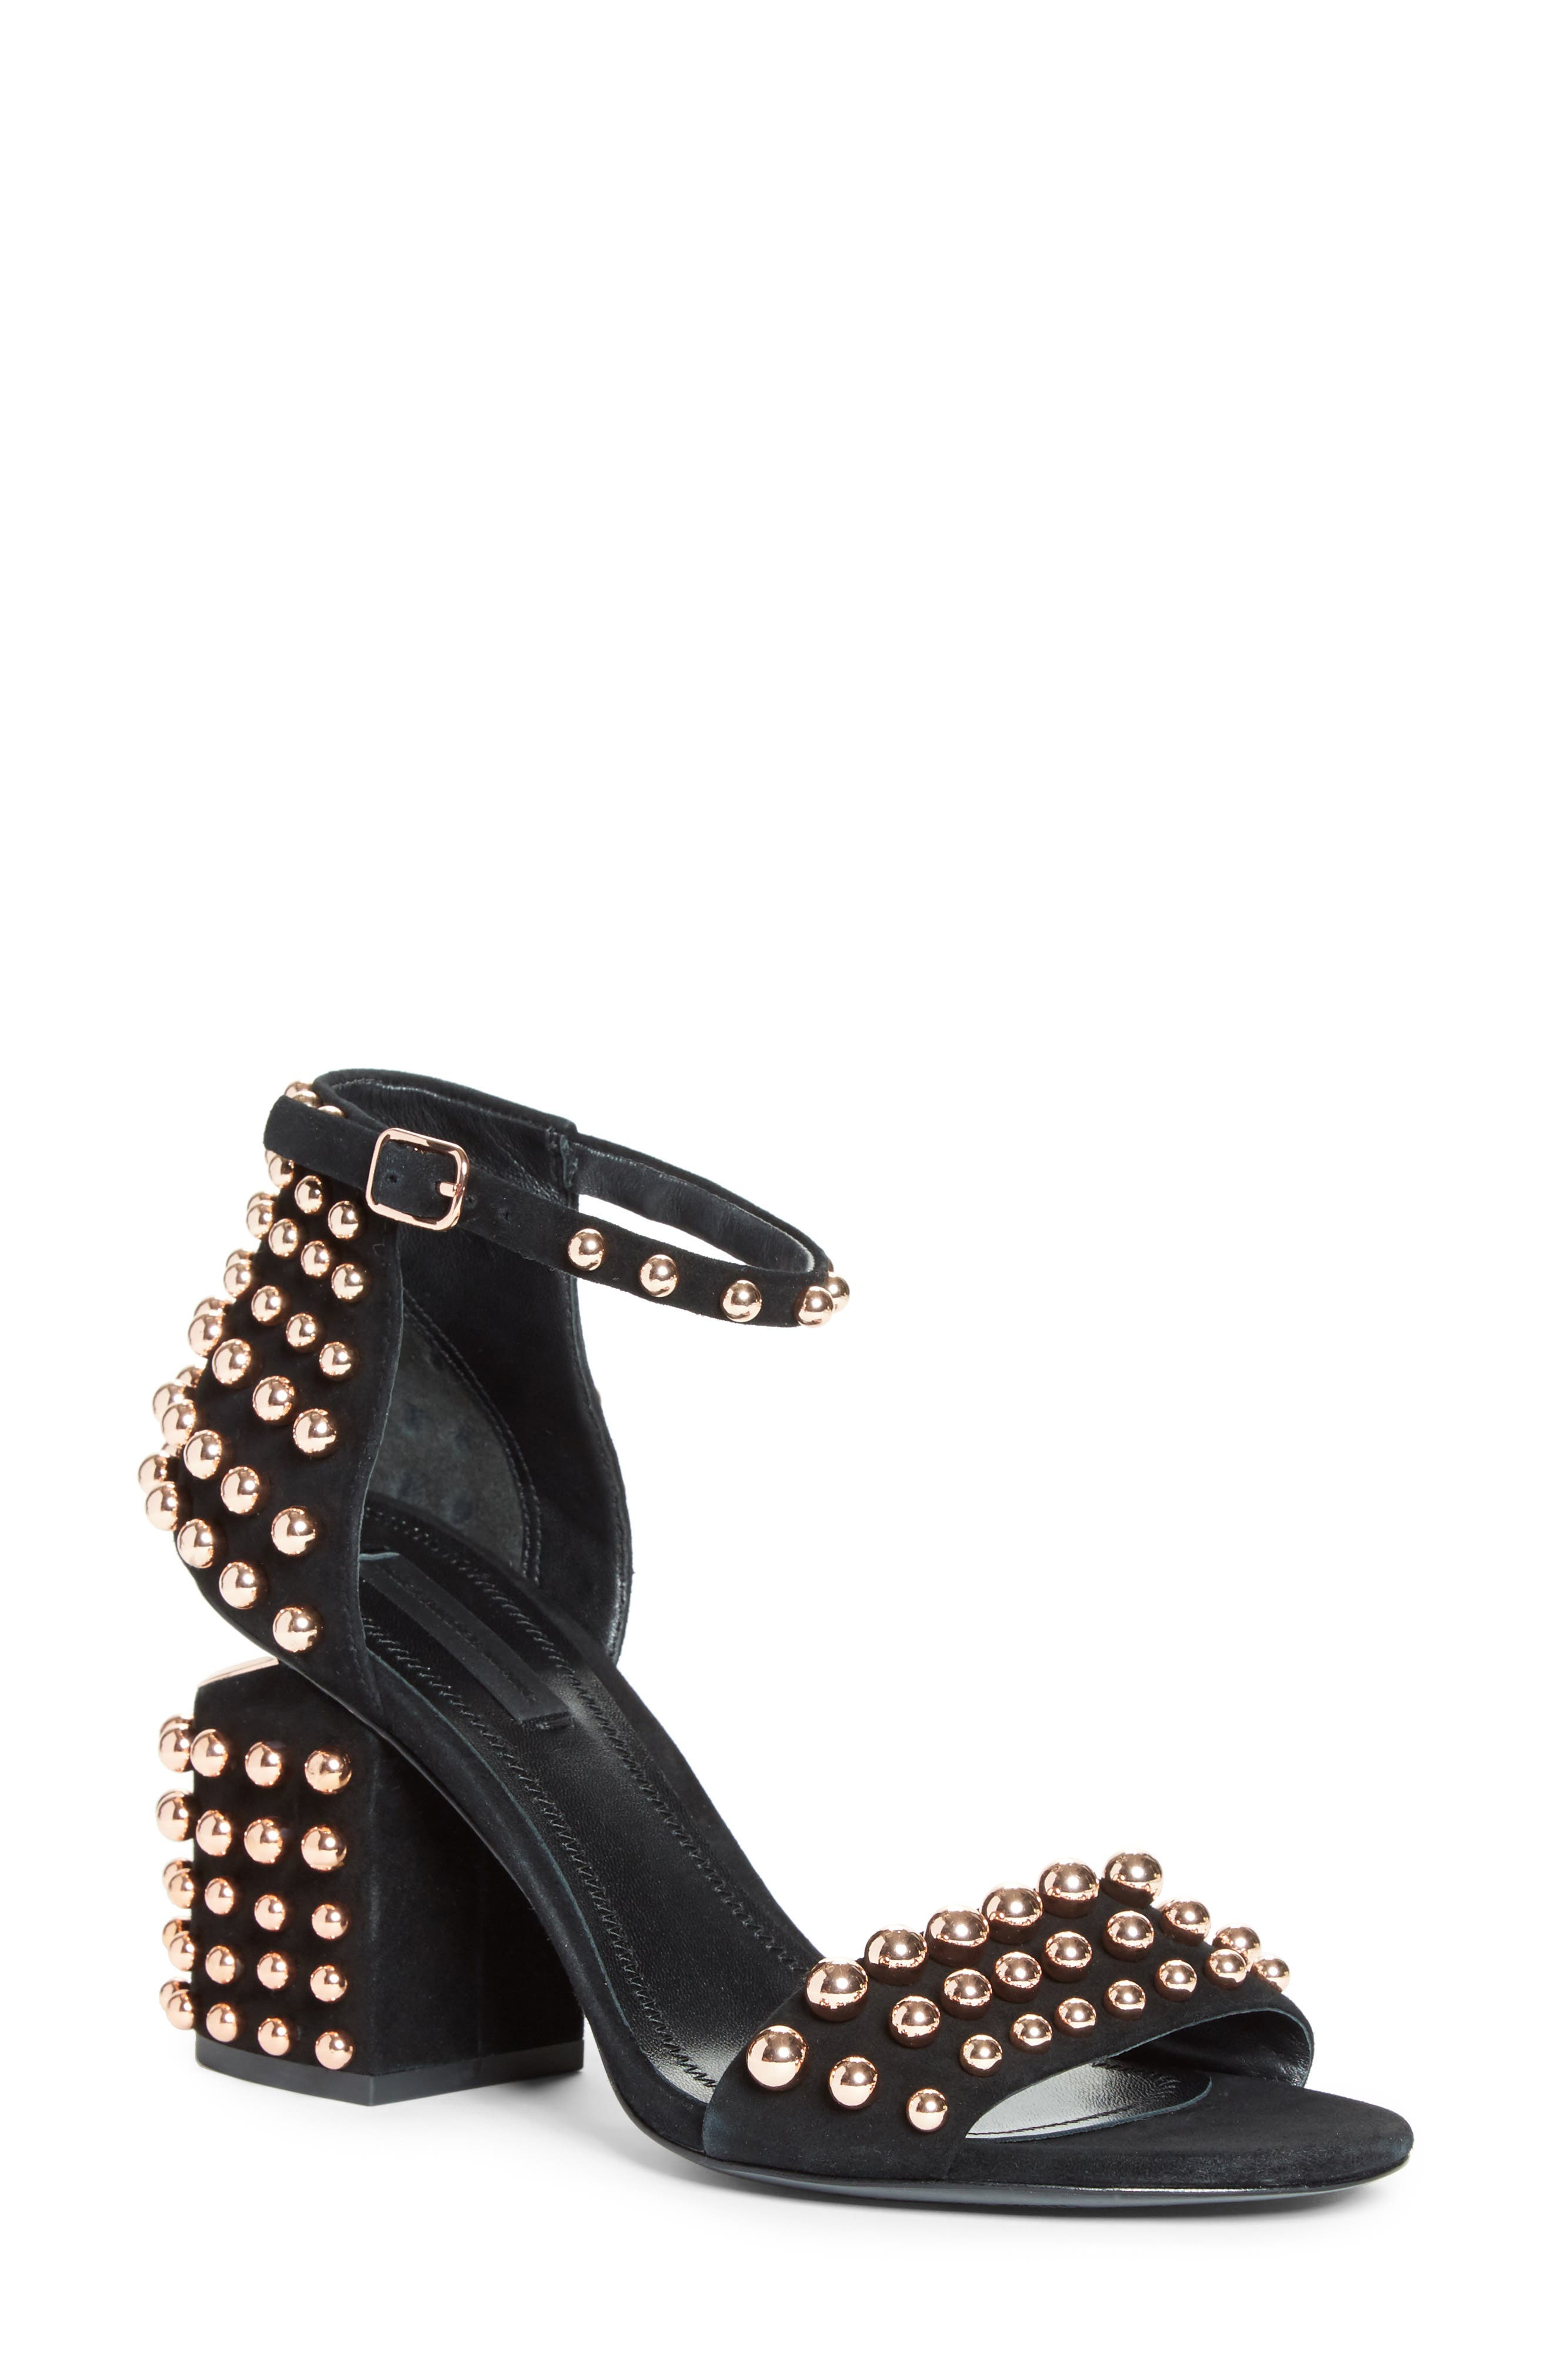 Alternate Image 1 Selected - Alexander Wang Studded Abby Sandal (Women) (Nordstrom Exclusive)